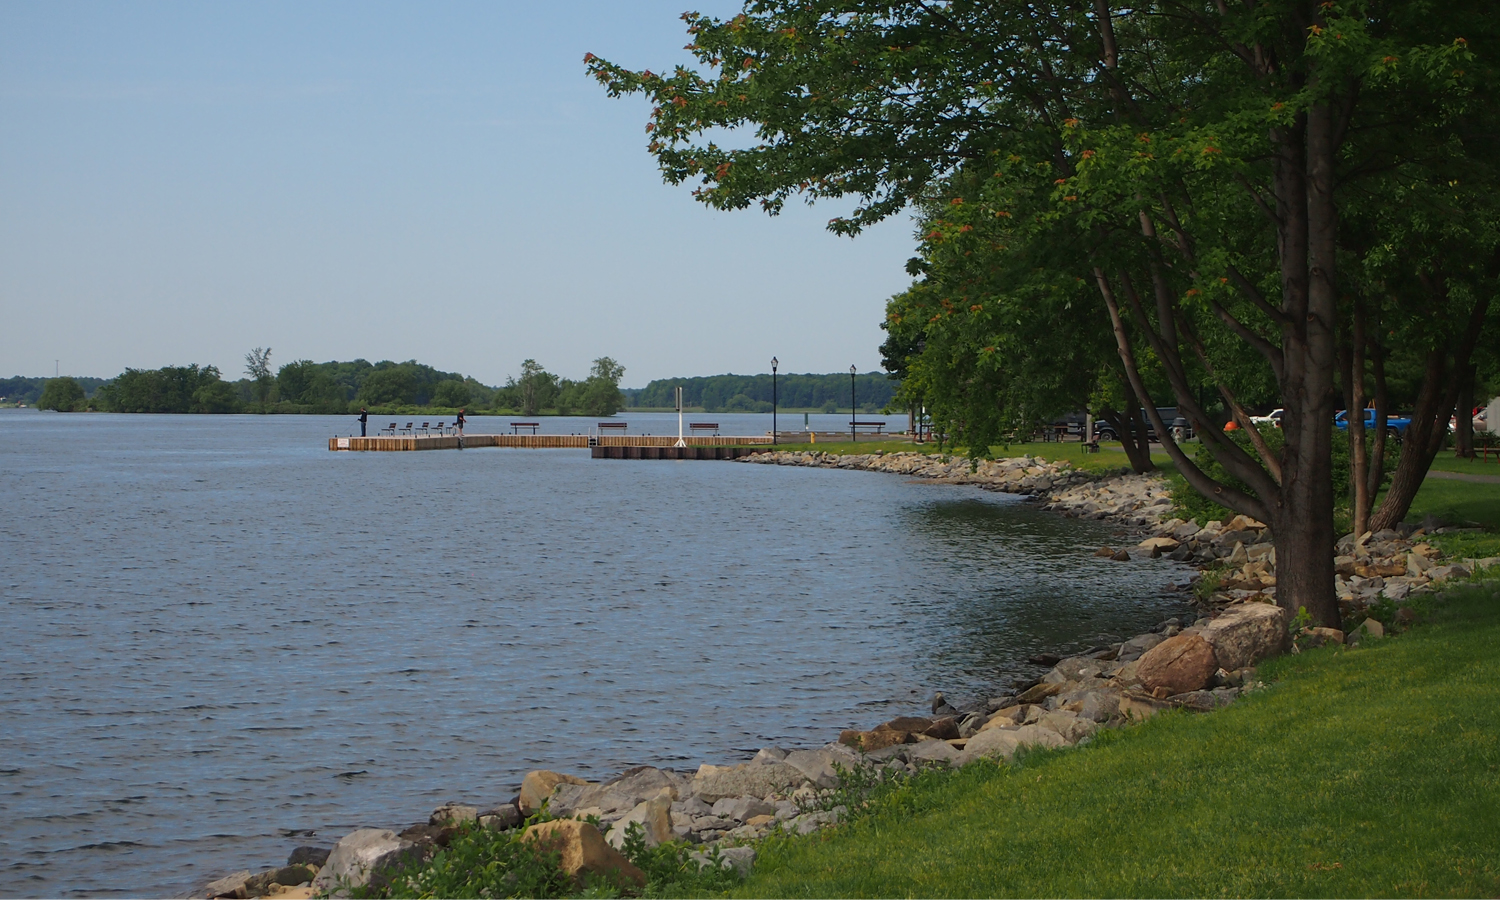 Morrisburg Waterfront Shoreline - Existing Condition